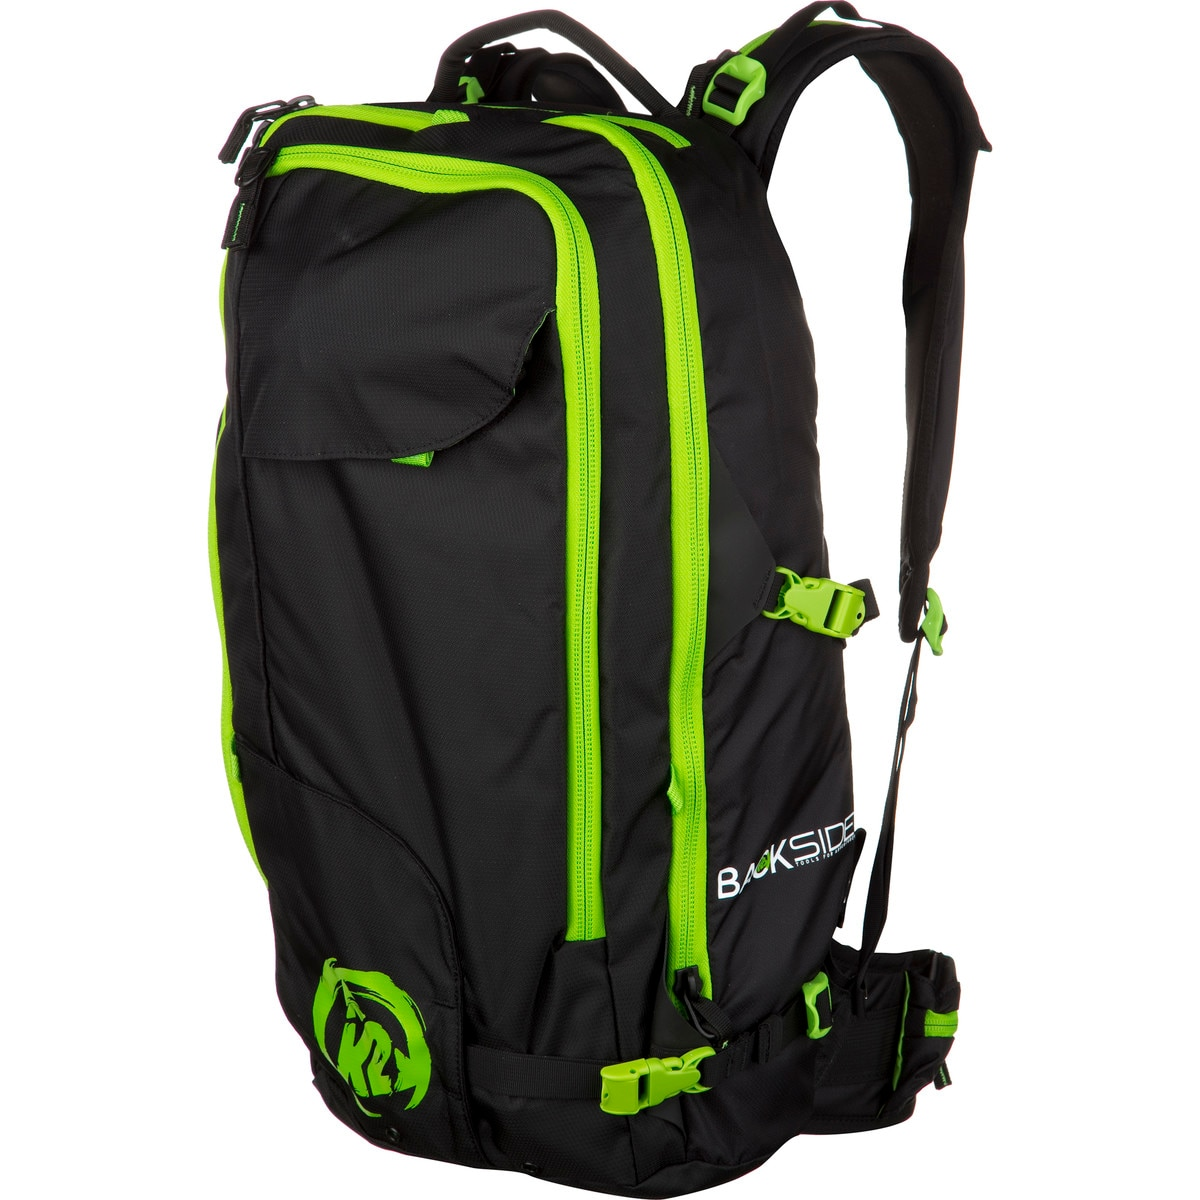 photo: K2 Backside 24 Kitted Pack